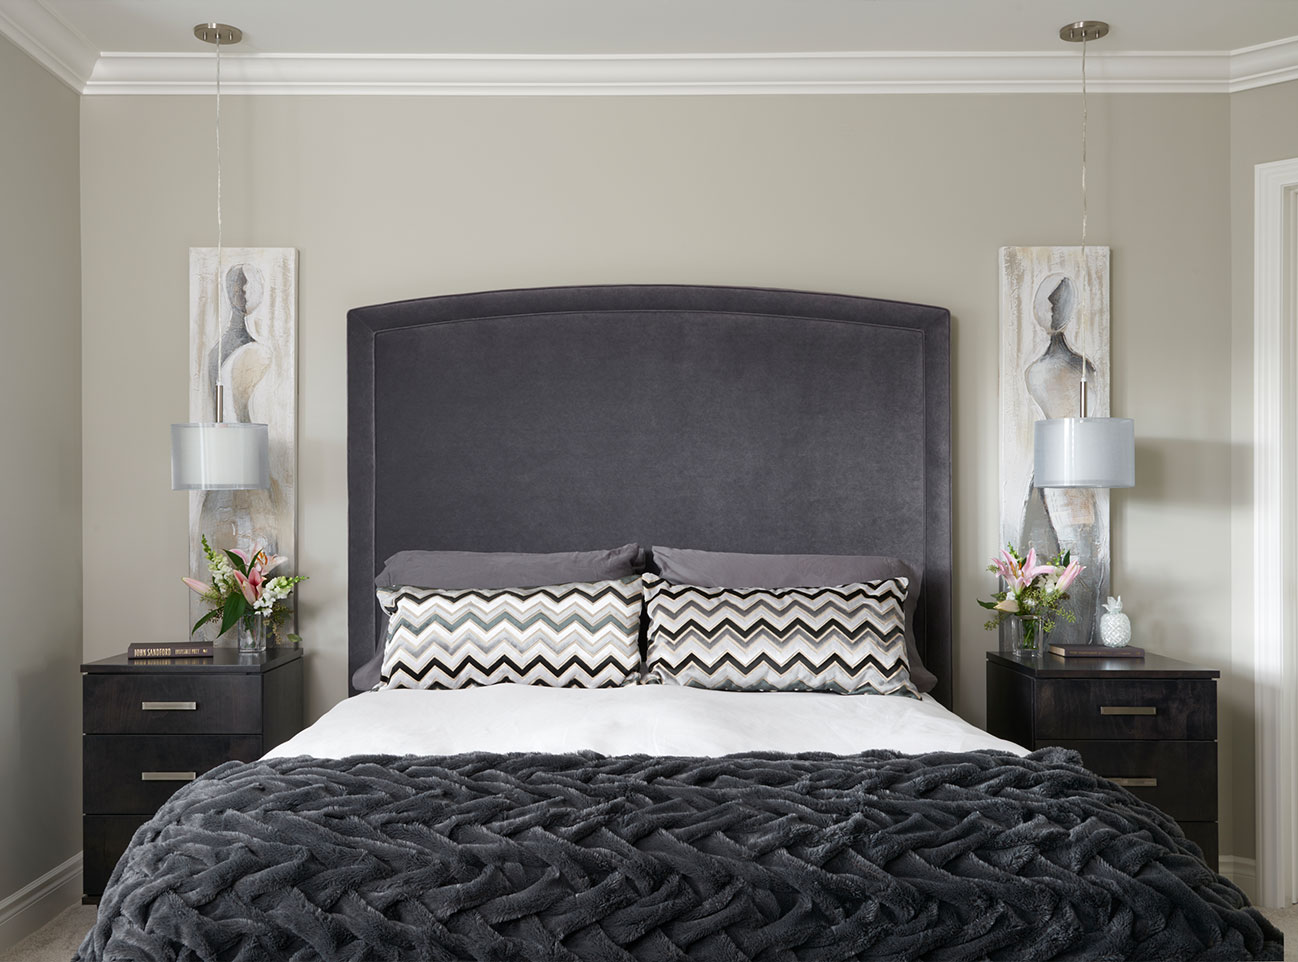 Revere Pewter Transformed This Master Bedroom!